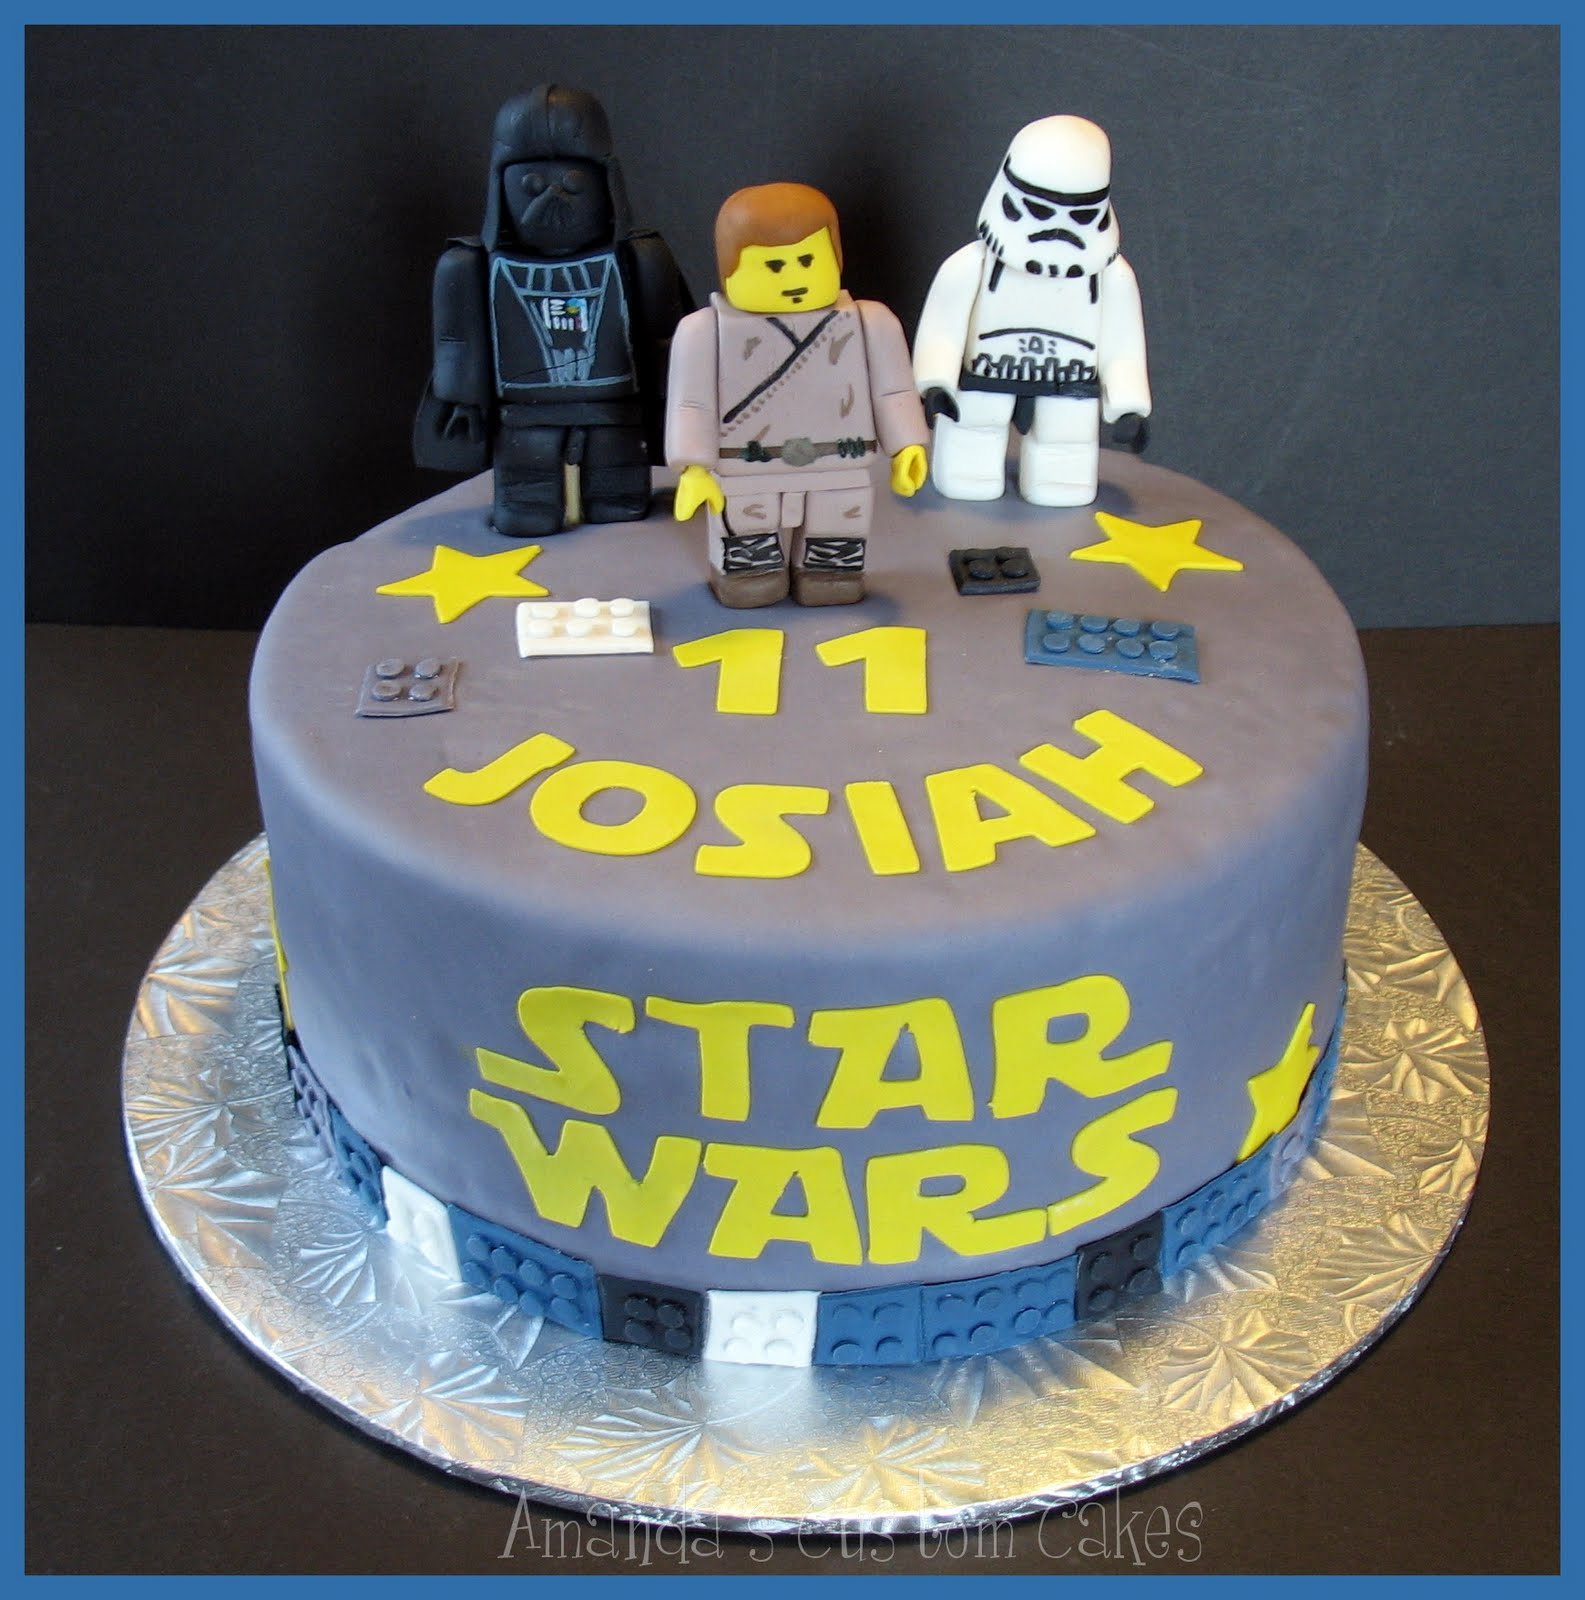 Images Of A Star Wars Cake : Amanda s Custom Cakes: Lego Star Wars Cake